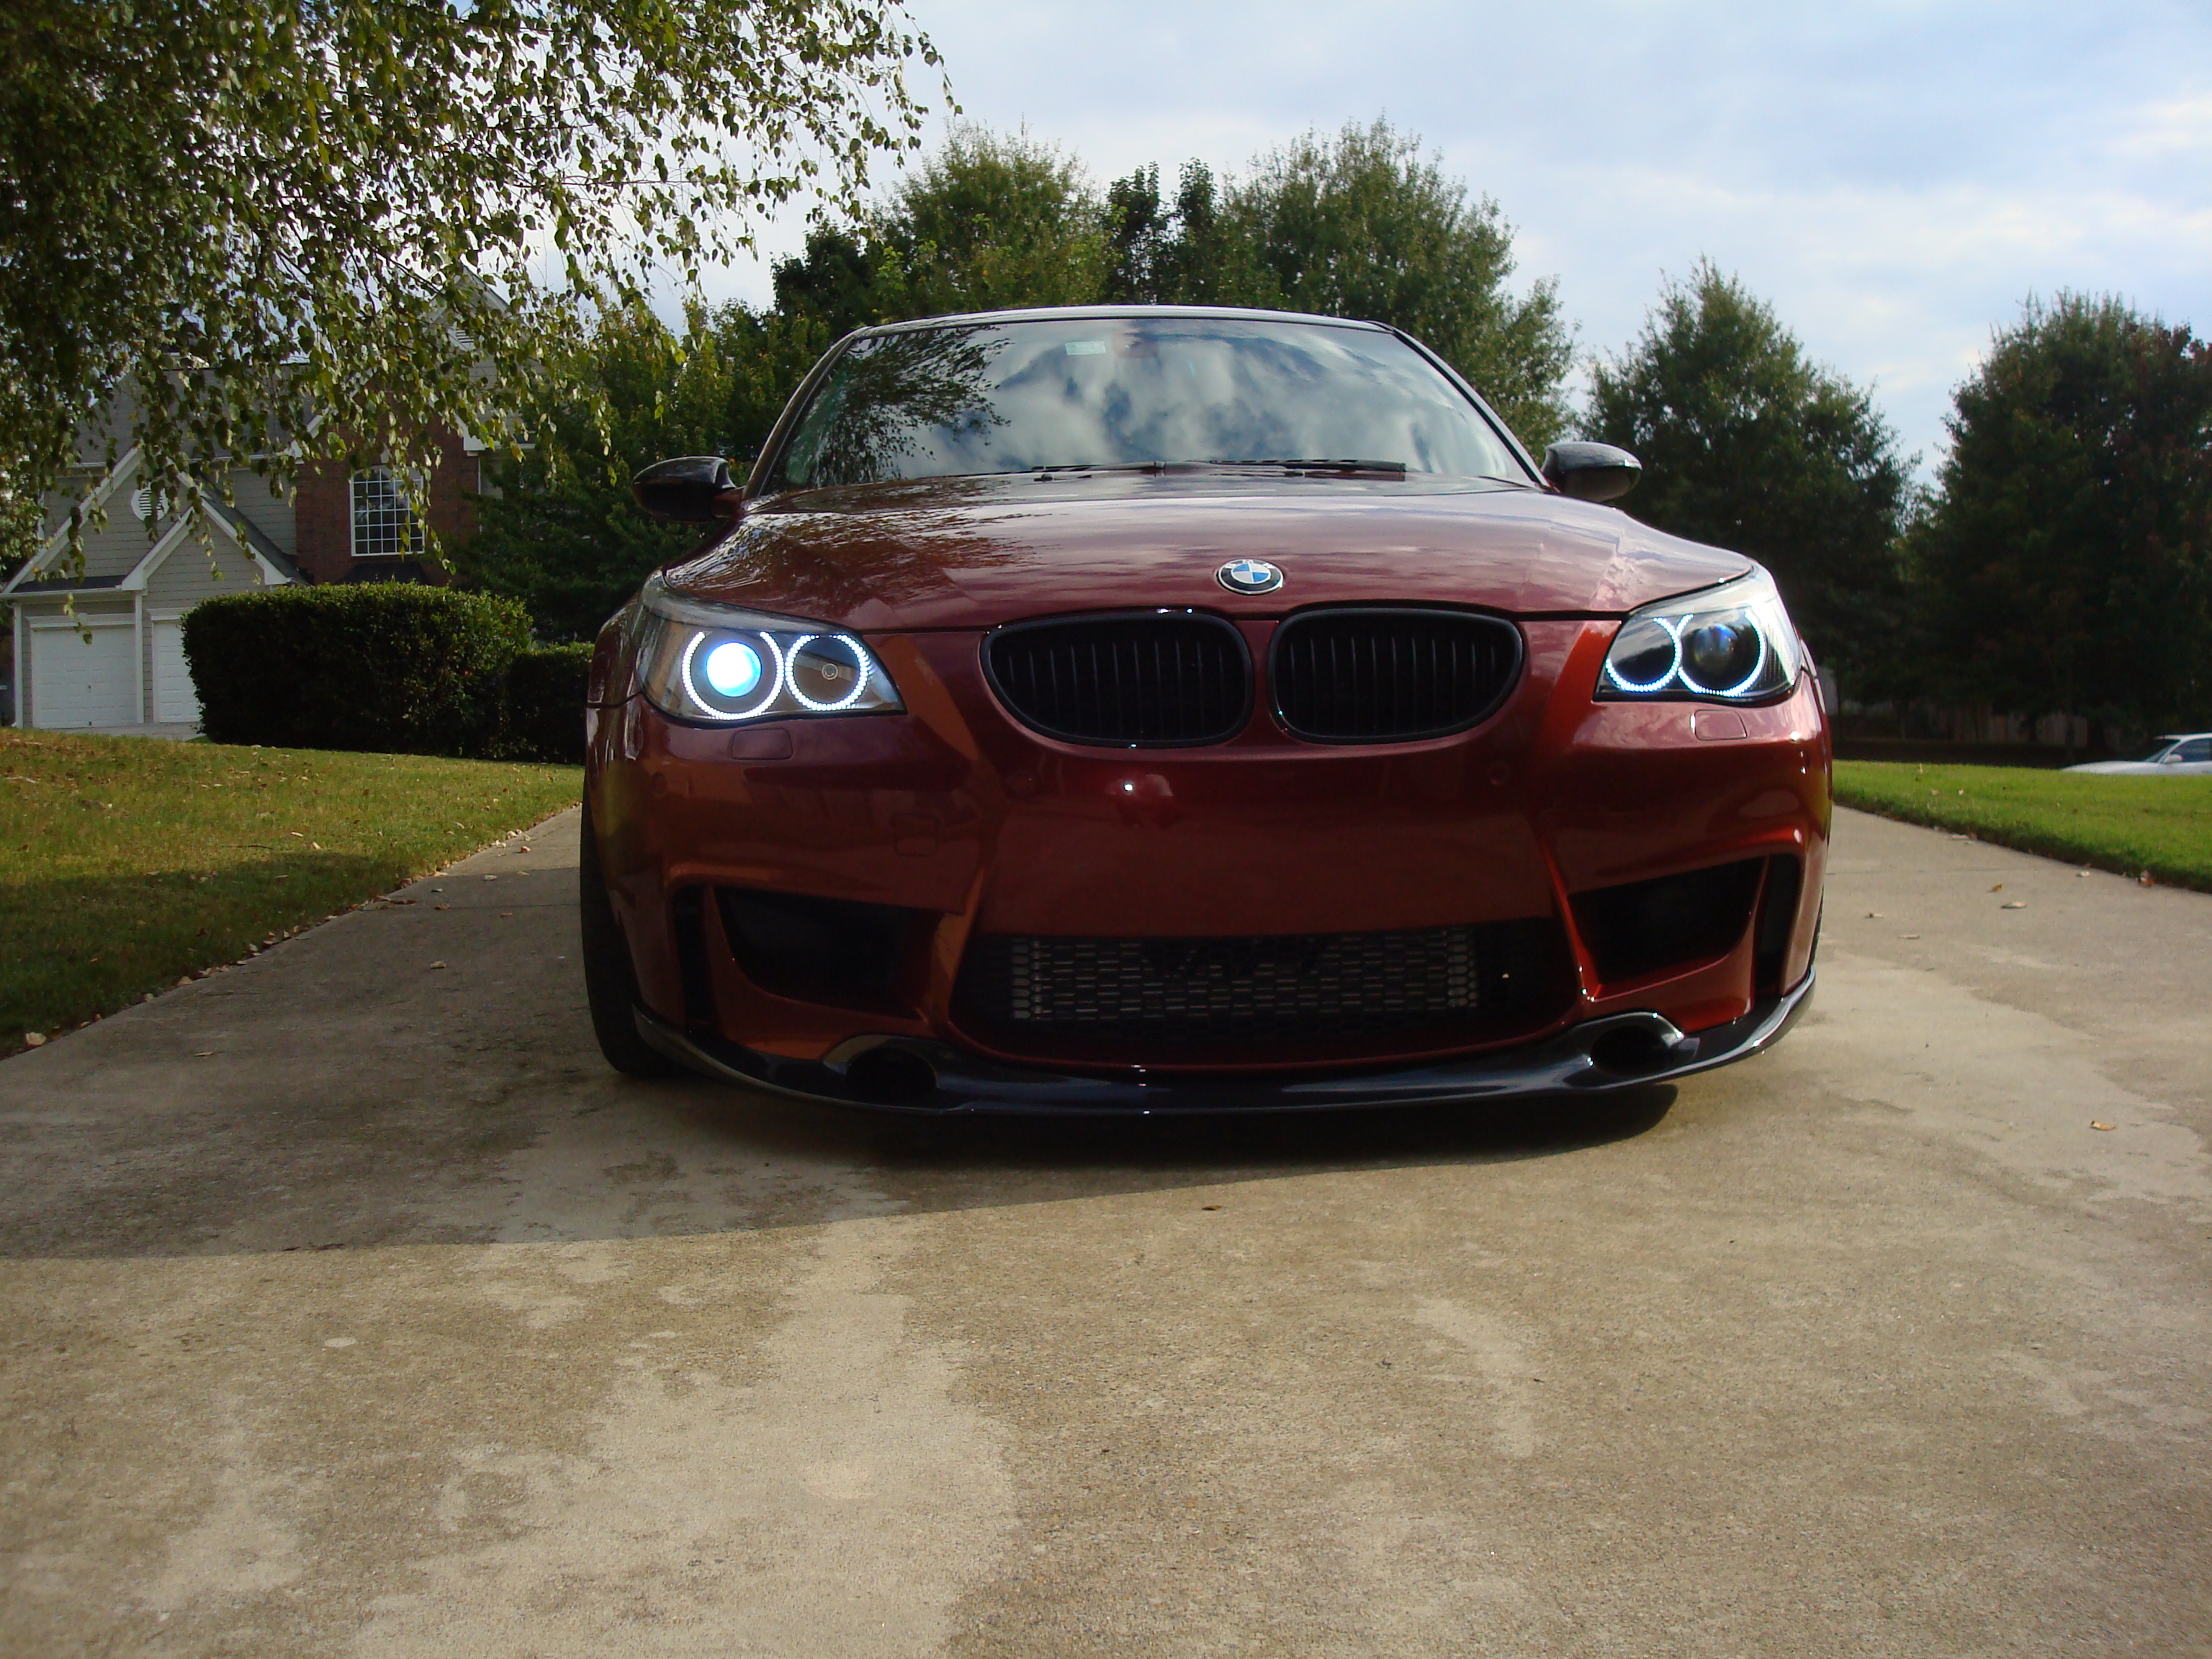 Custom Paint Jobs On M5 Page 3 Bmw M5 Forum And M6 Forums